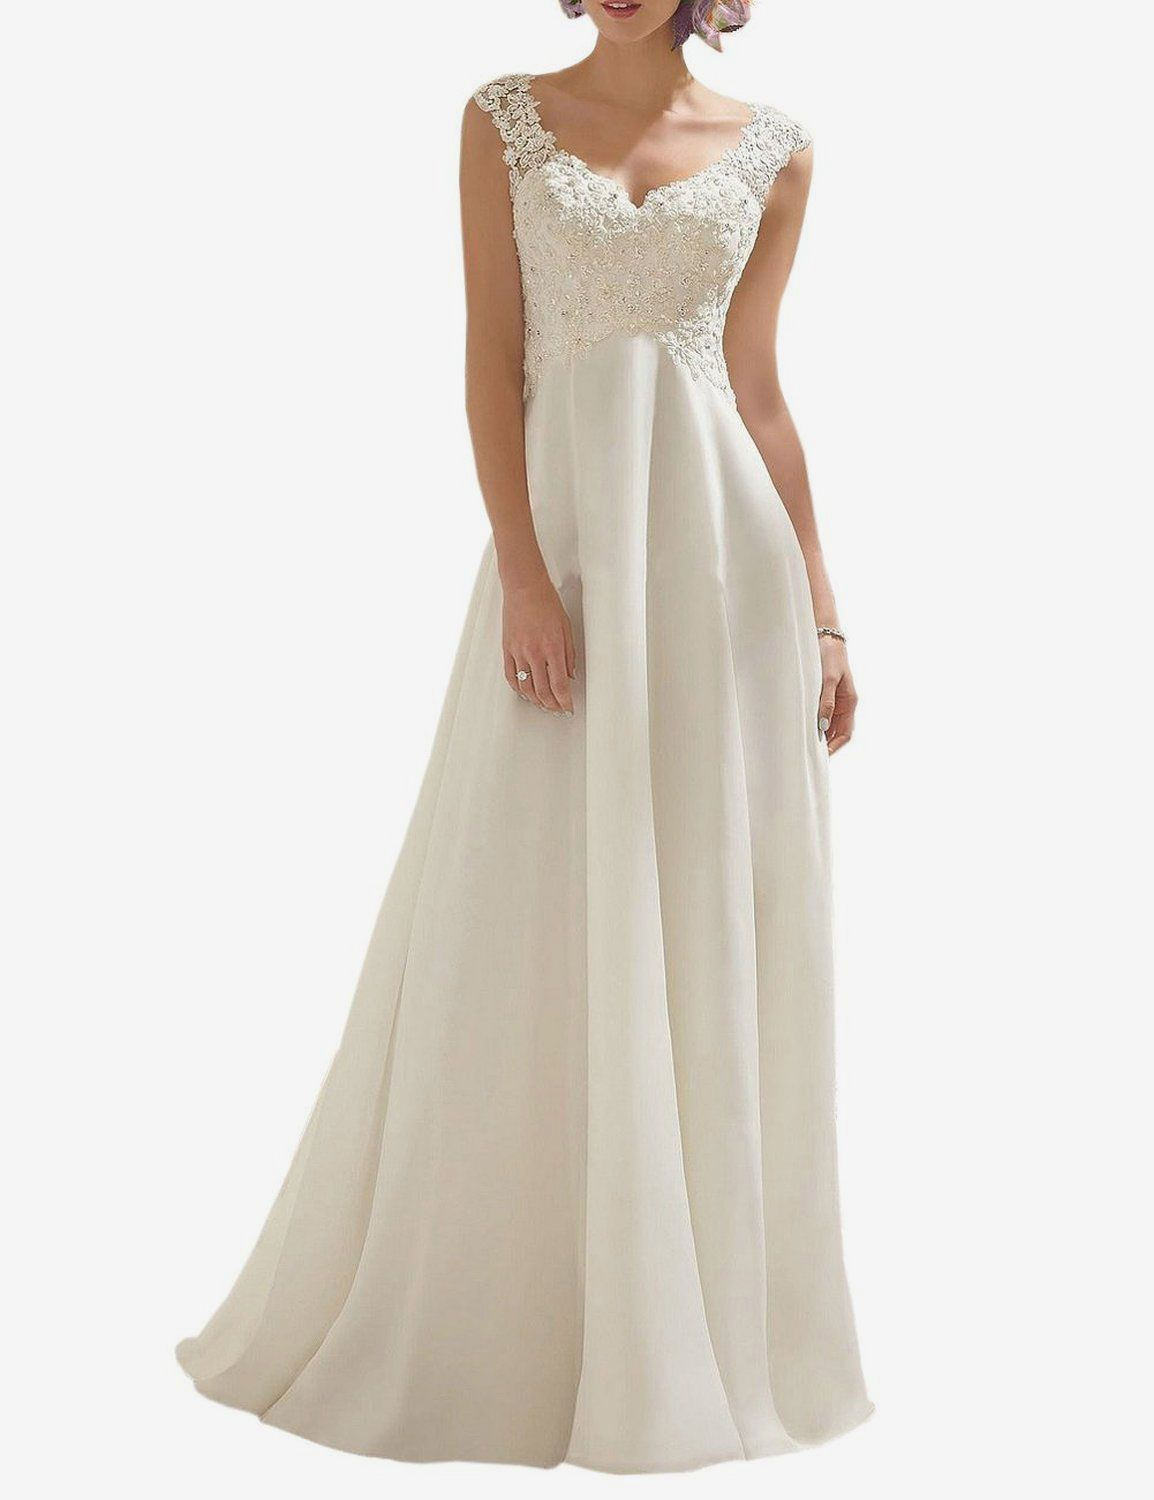 ABaowedding V-Neck Sleeveless Lace Wedding Dress